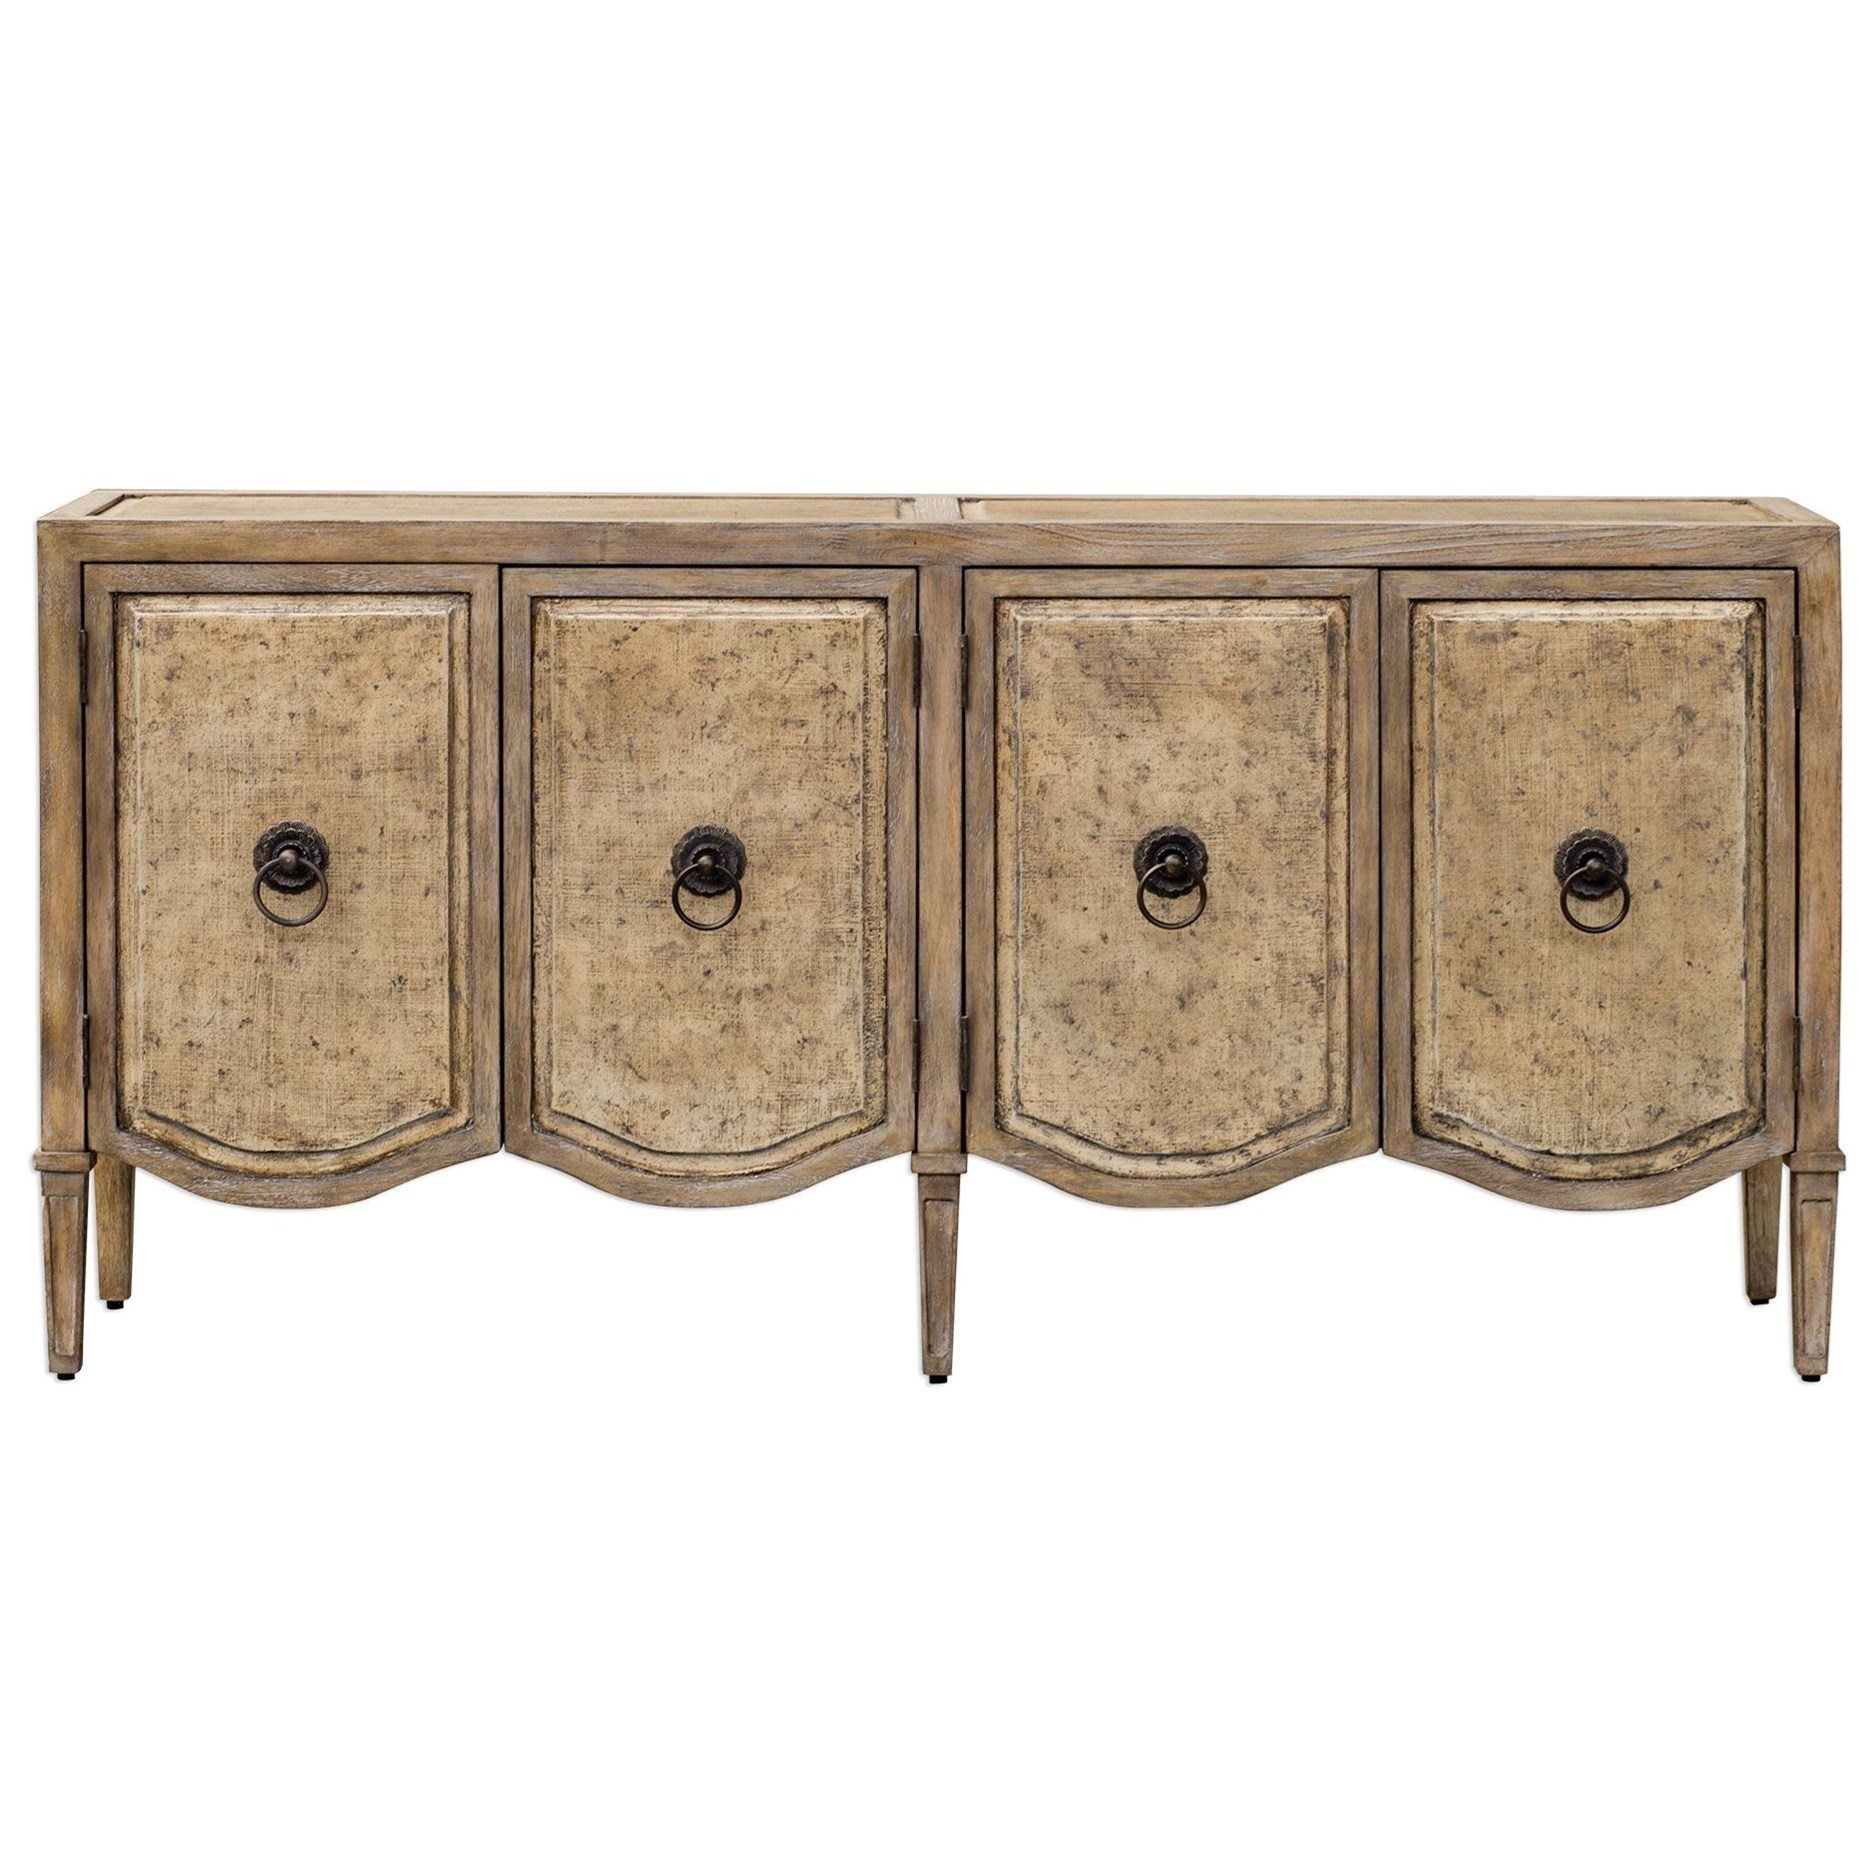 Accent Furniture - Occasional Tables Thina Champagne Console Cabinet by Uttermost at Upper Room Home Furnishings